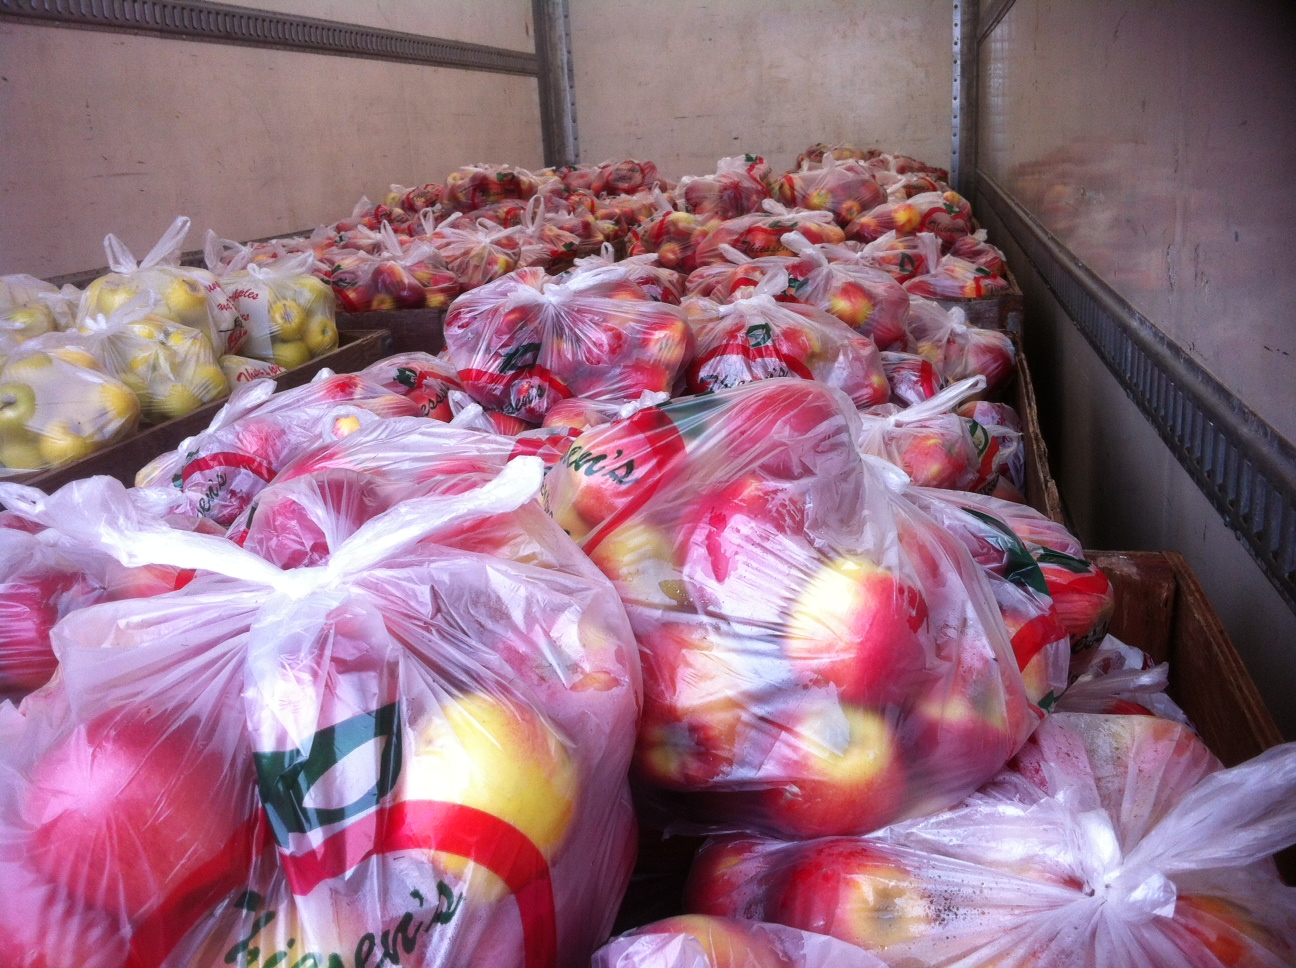 Bags of apples donated by Thiessen's Orchard. (Photo by Kevin Black.)